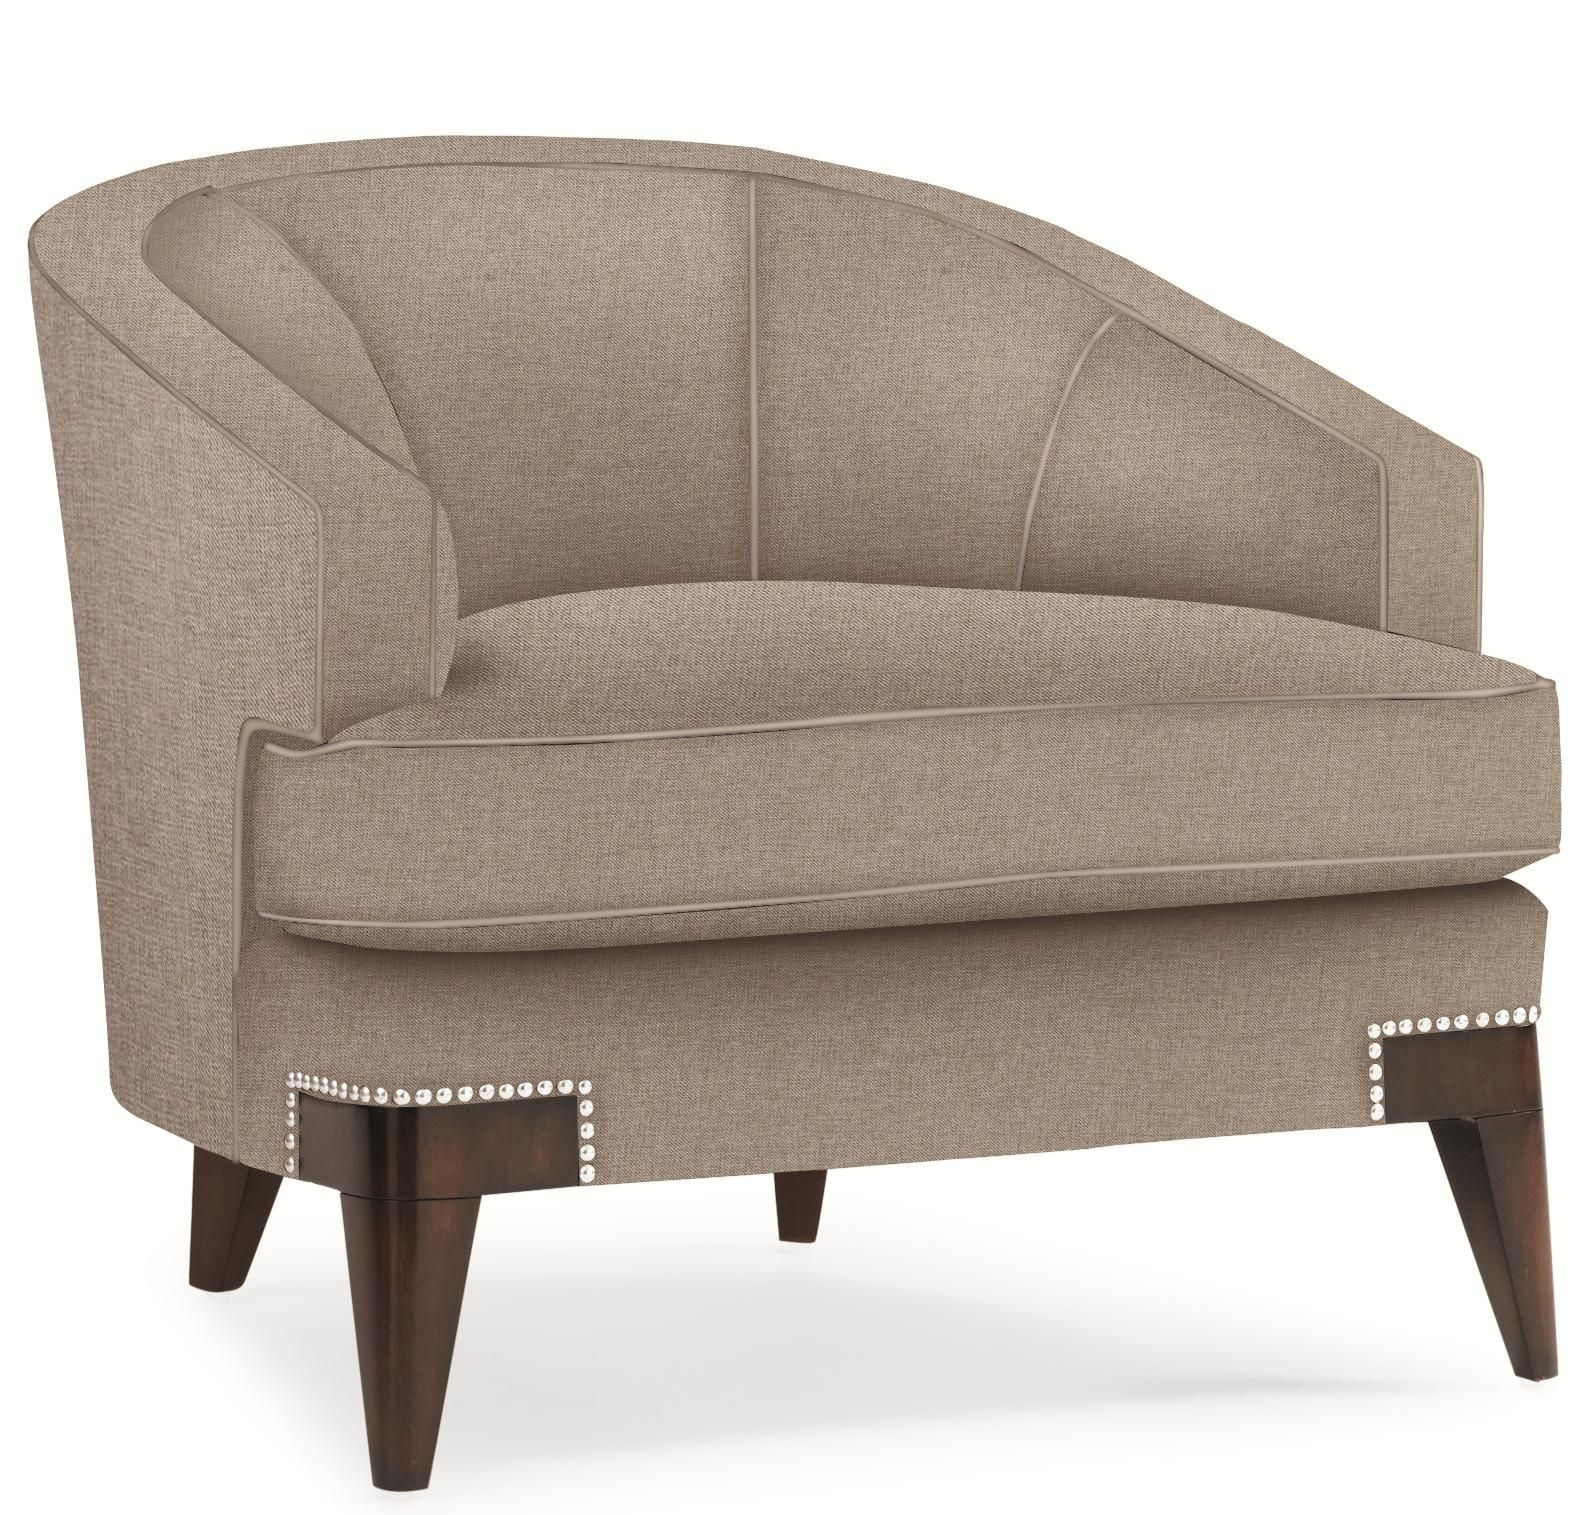 Maggie maggie chair by schnadig sillones individuales - Butacas individuales ...